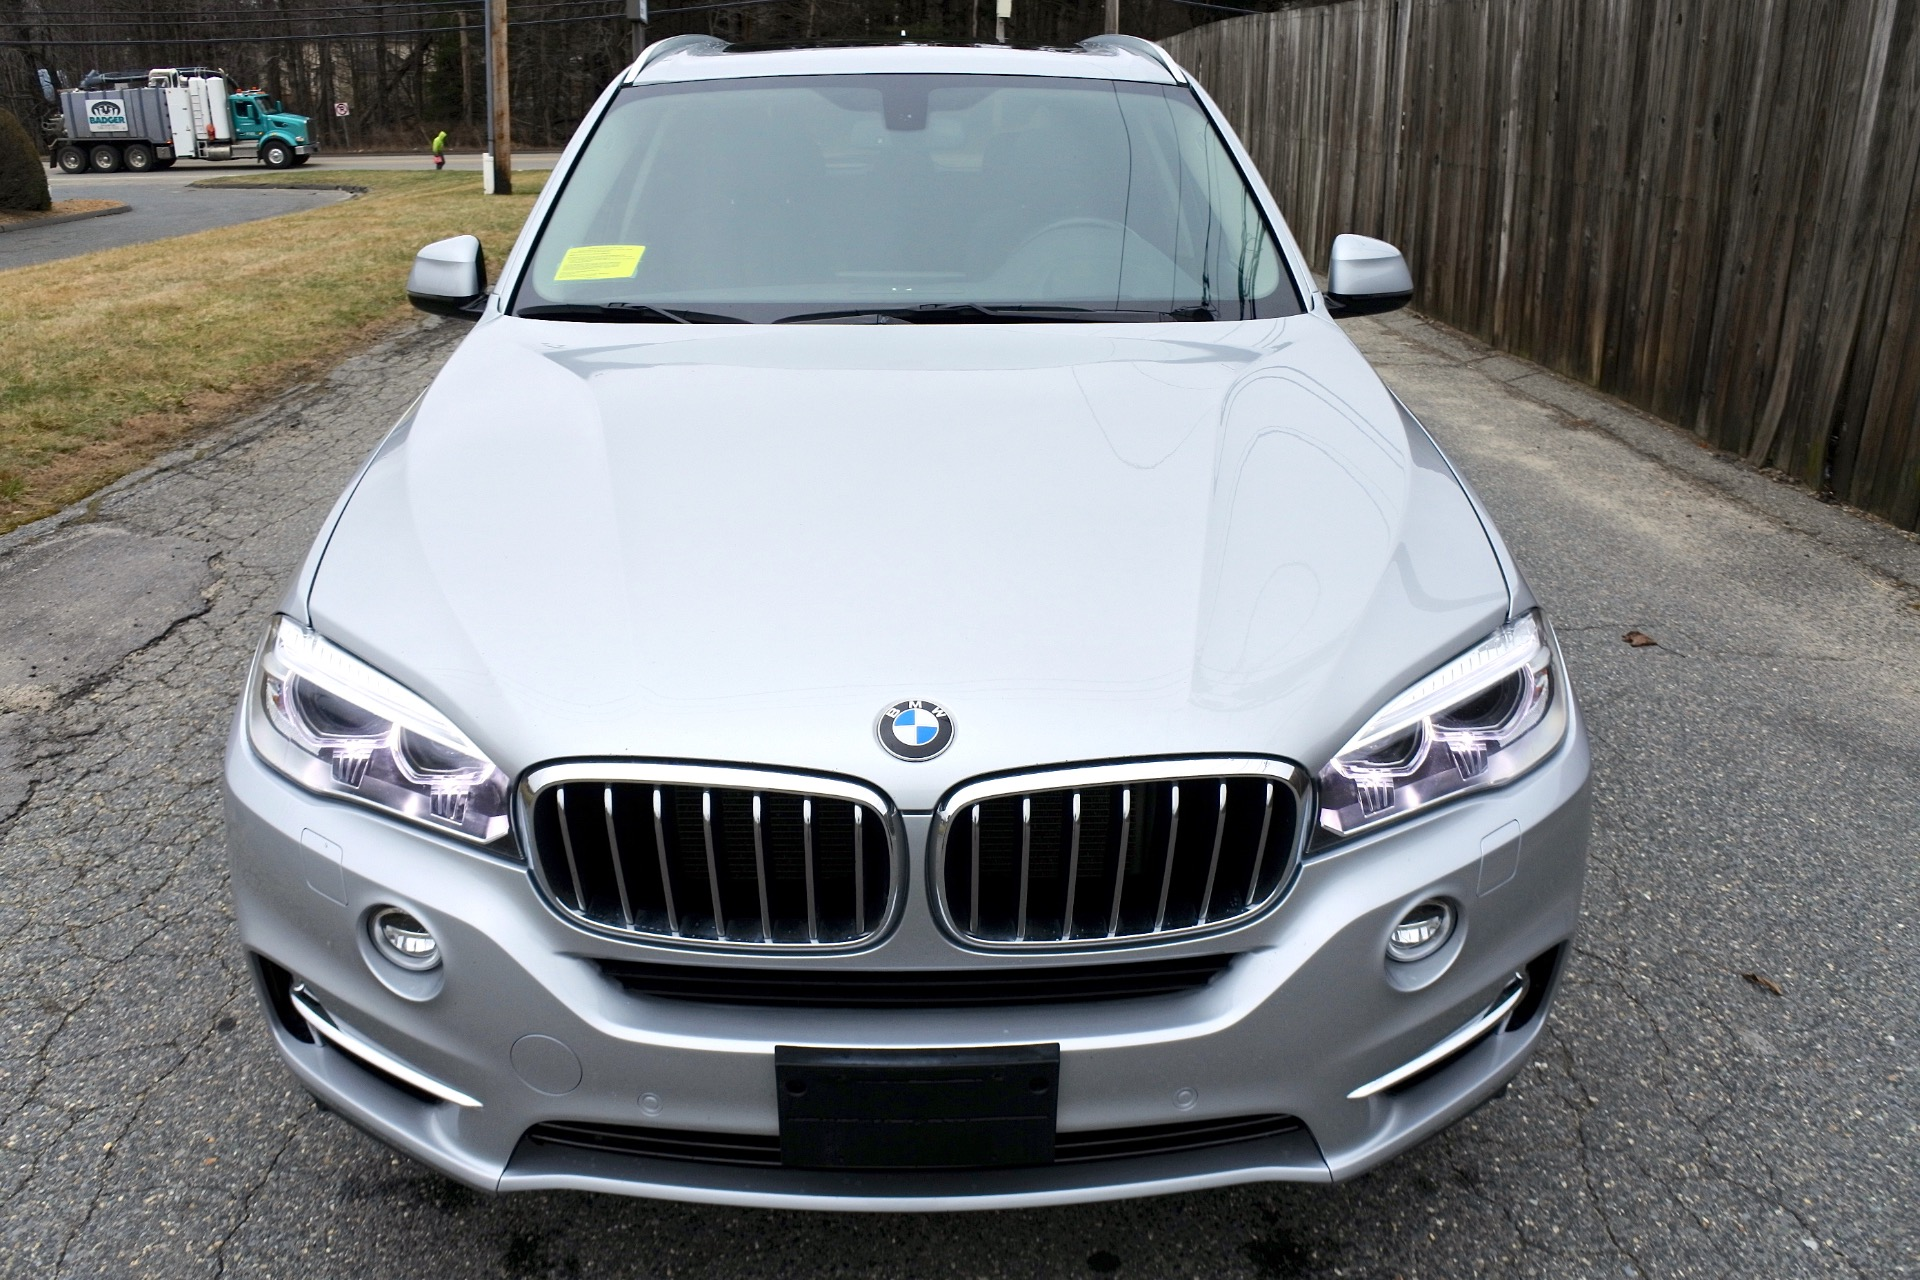 Used 2015 BMW X5 AWD 4dr xDrive35d Used 2015 BMW X5 AWD 4dr xDrive35d for sale  at Metro West Motorcars LLC in Shrewsbury MA 8